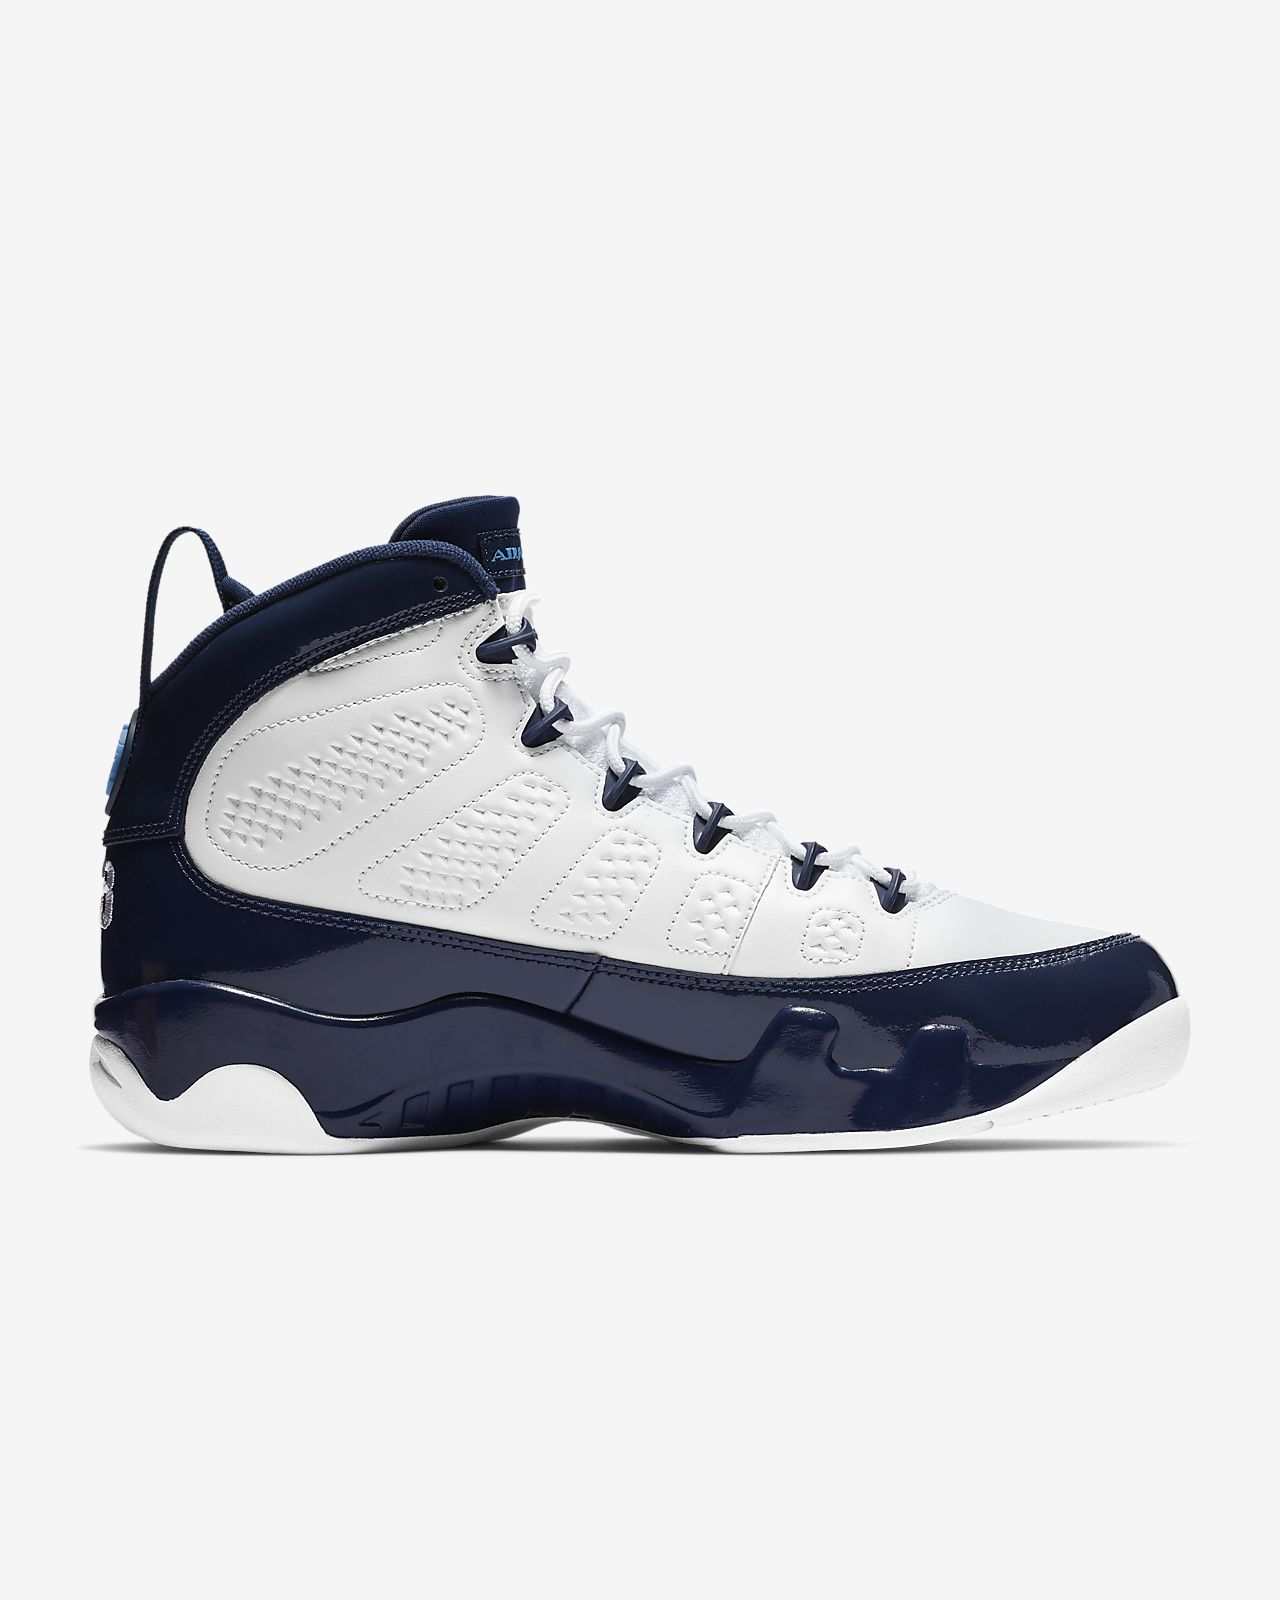 san francisco f4ccc fbdd4 ... Air Jordan 9 Retro Men s Shoe